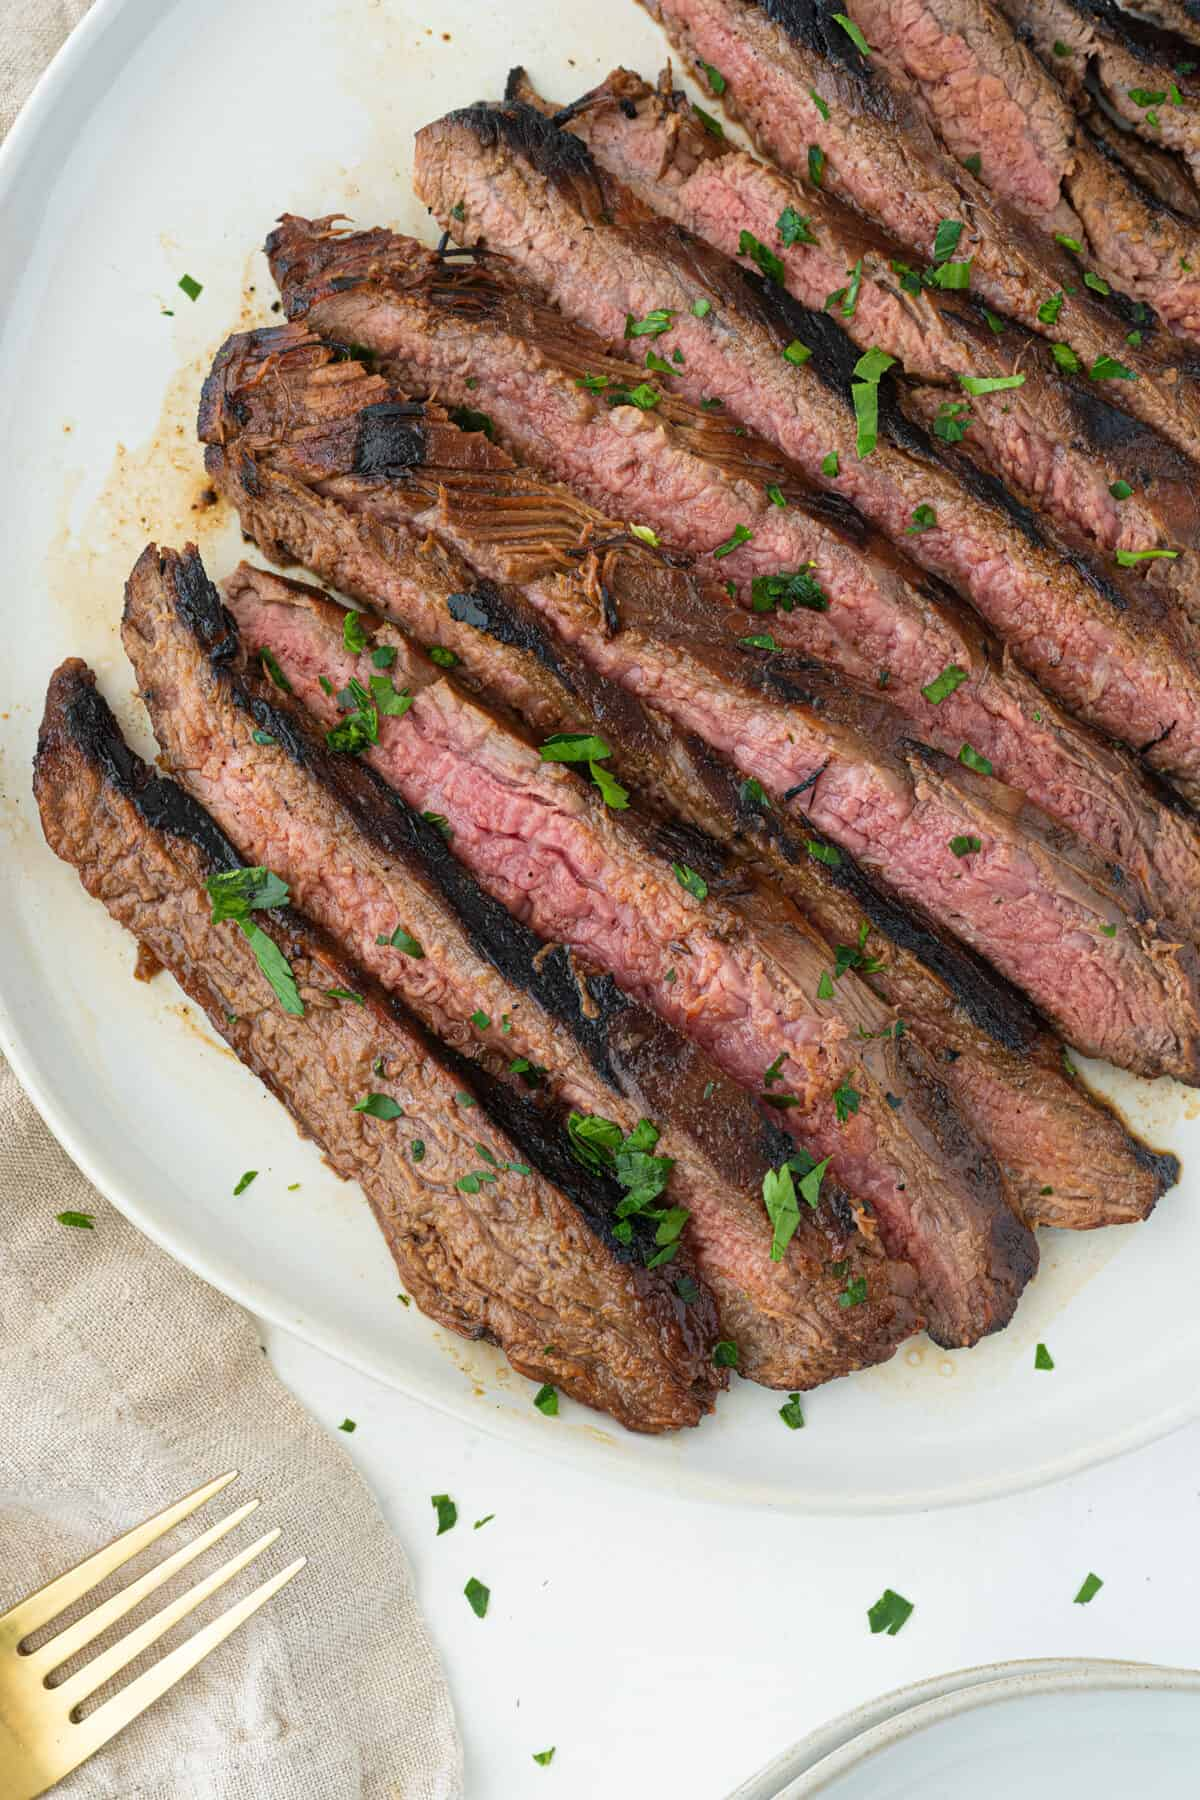 Sliced and cooked marinated flank steak on a white plate